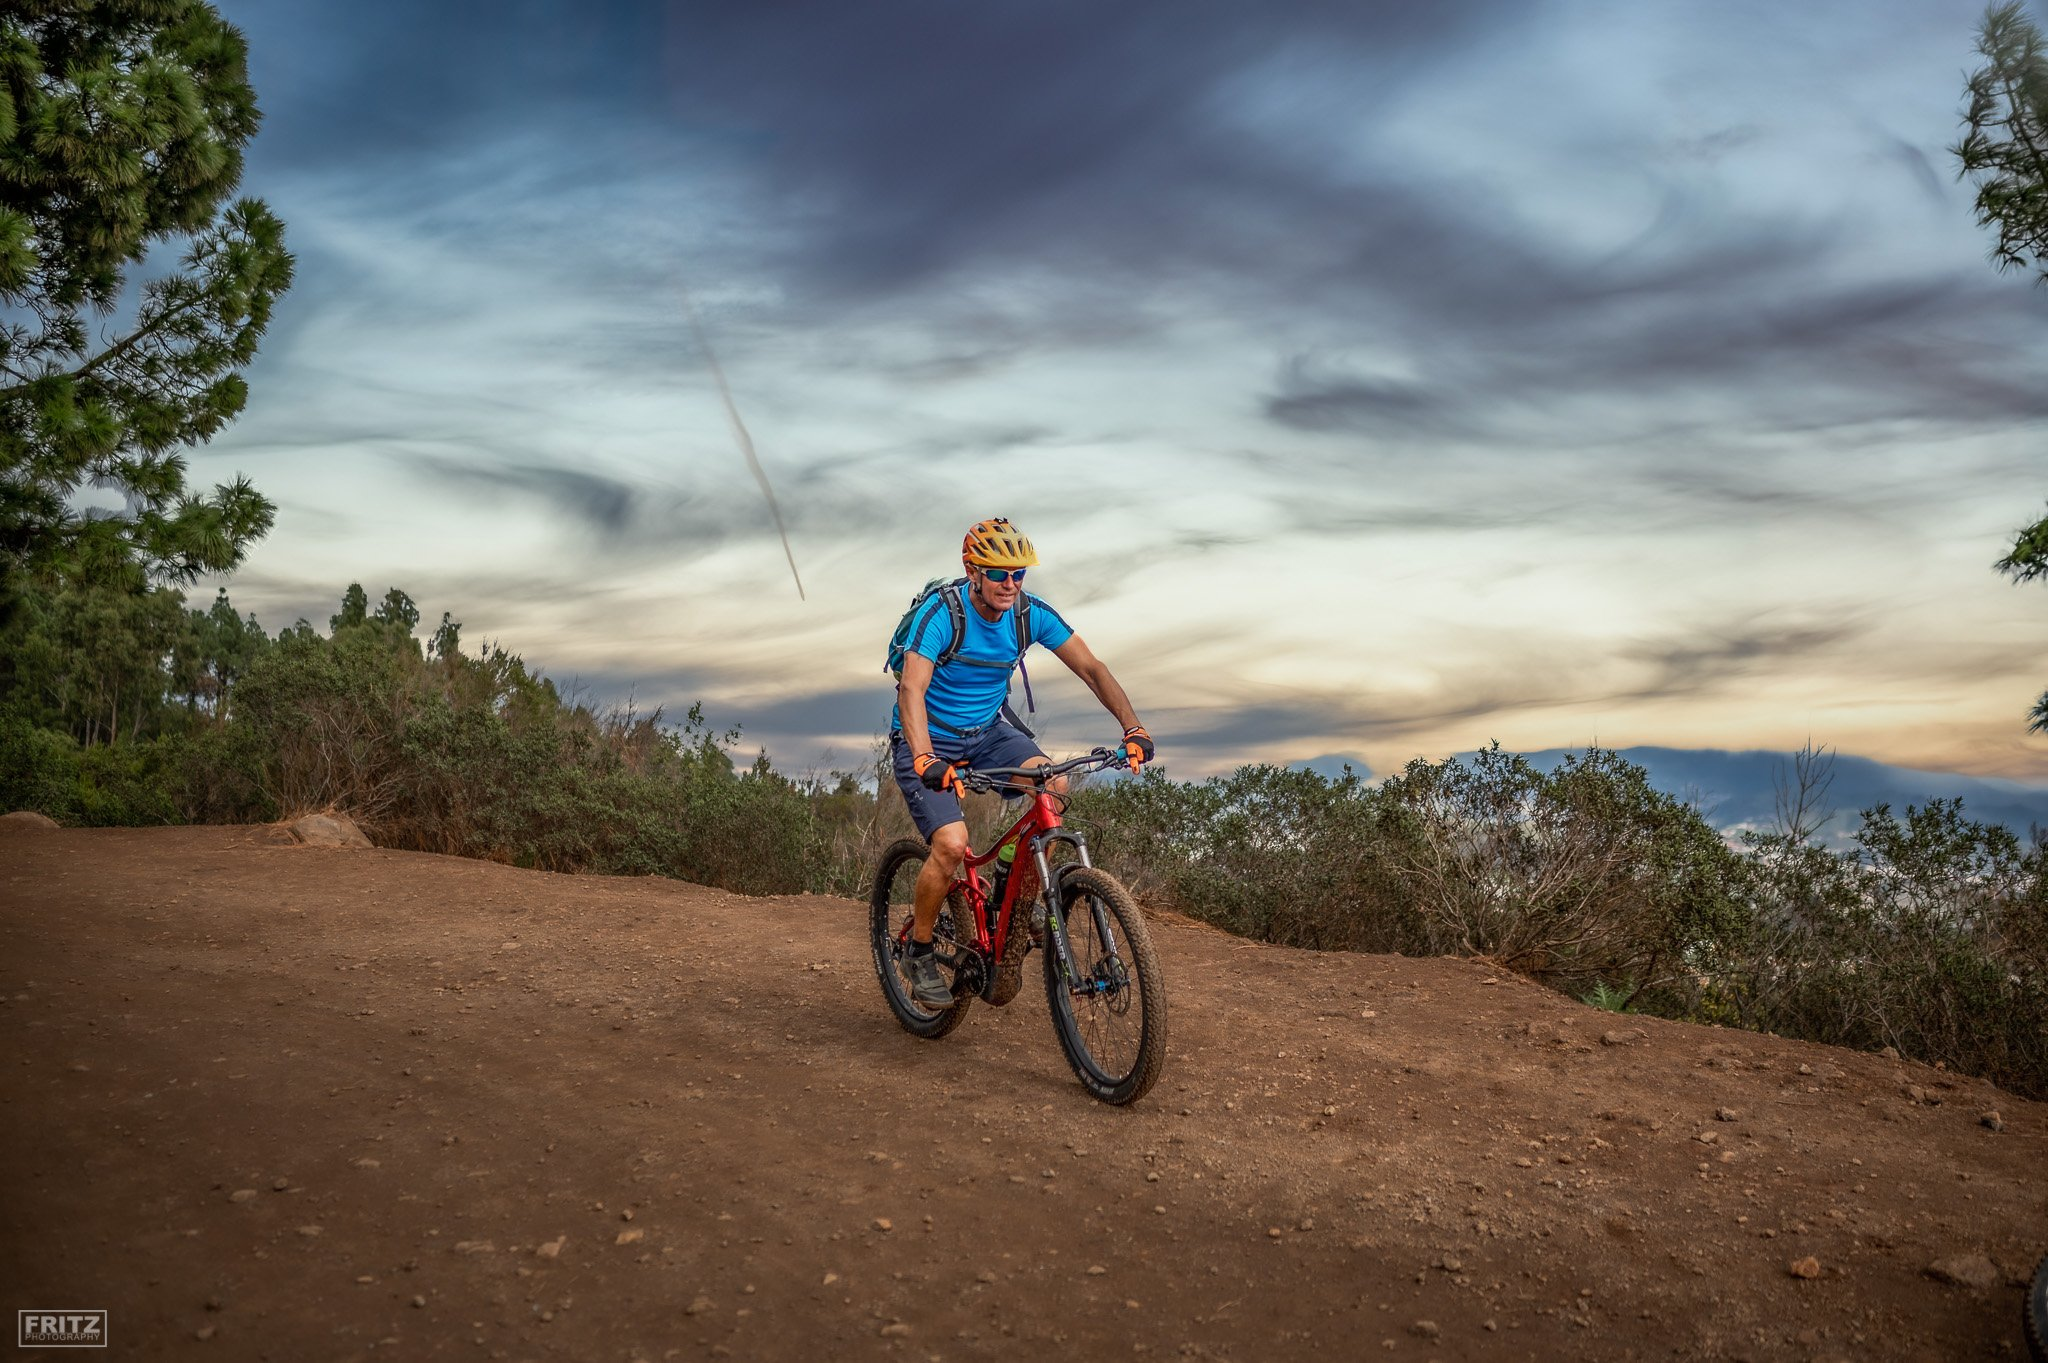 EMTB Ride around the Teide